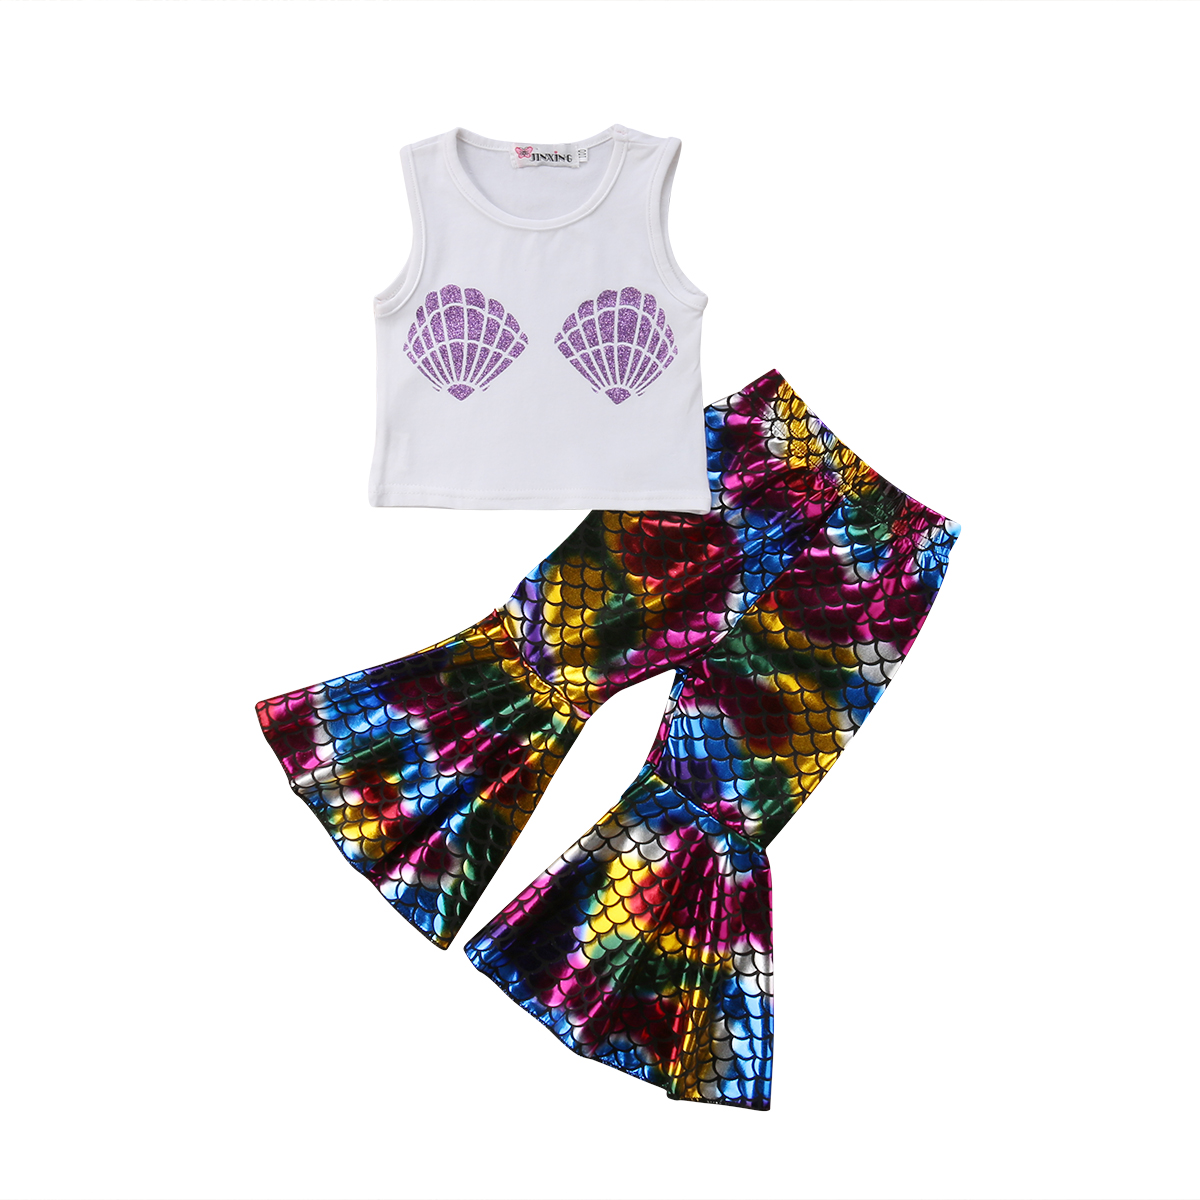 Fancy 2pcs Newborn Kid Baby Girls Shell Print Romper Flared Sleeve Jumpsuit+fish Scale Skirts Cute Summer Outfit Clothes Girls' Baby Clothing